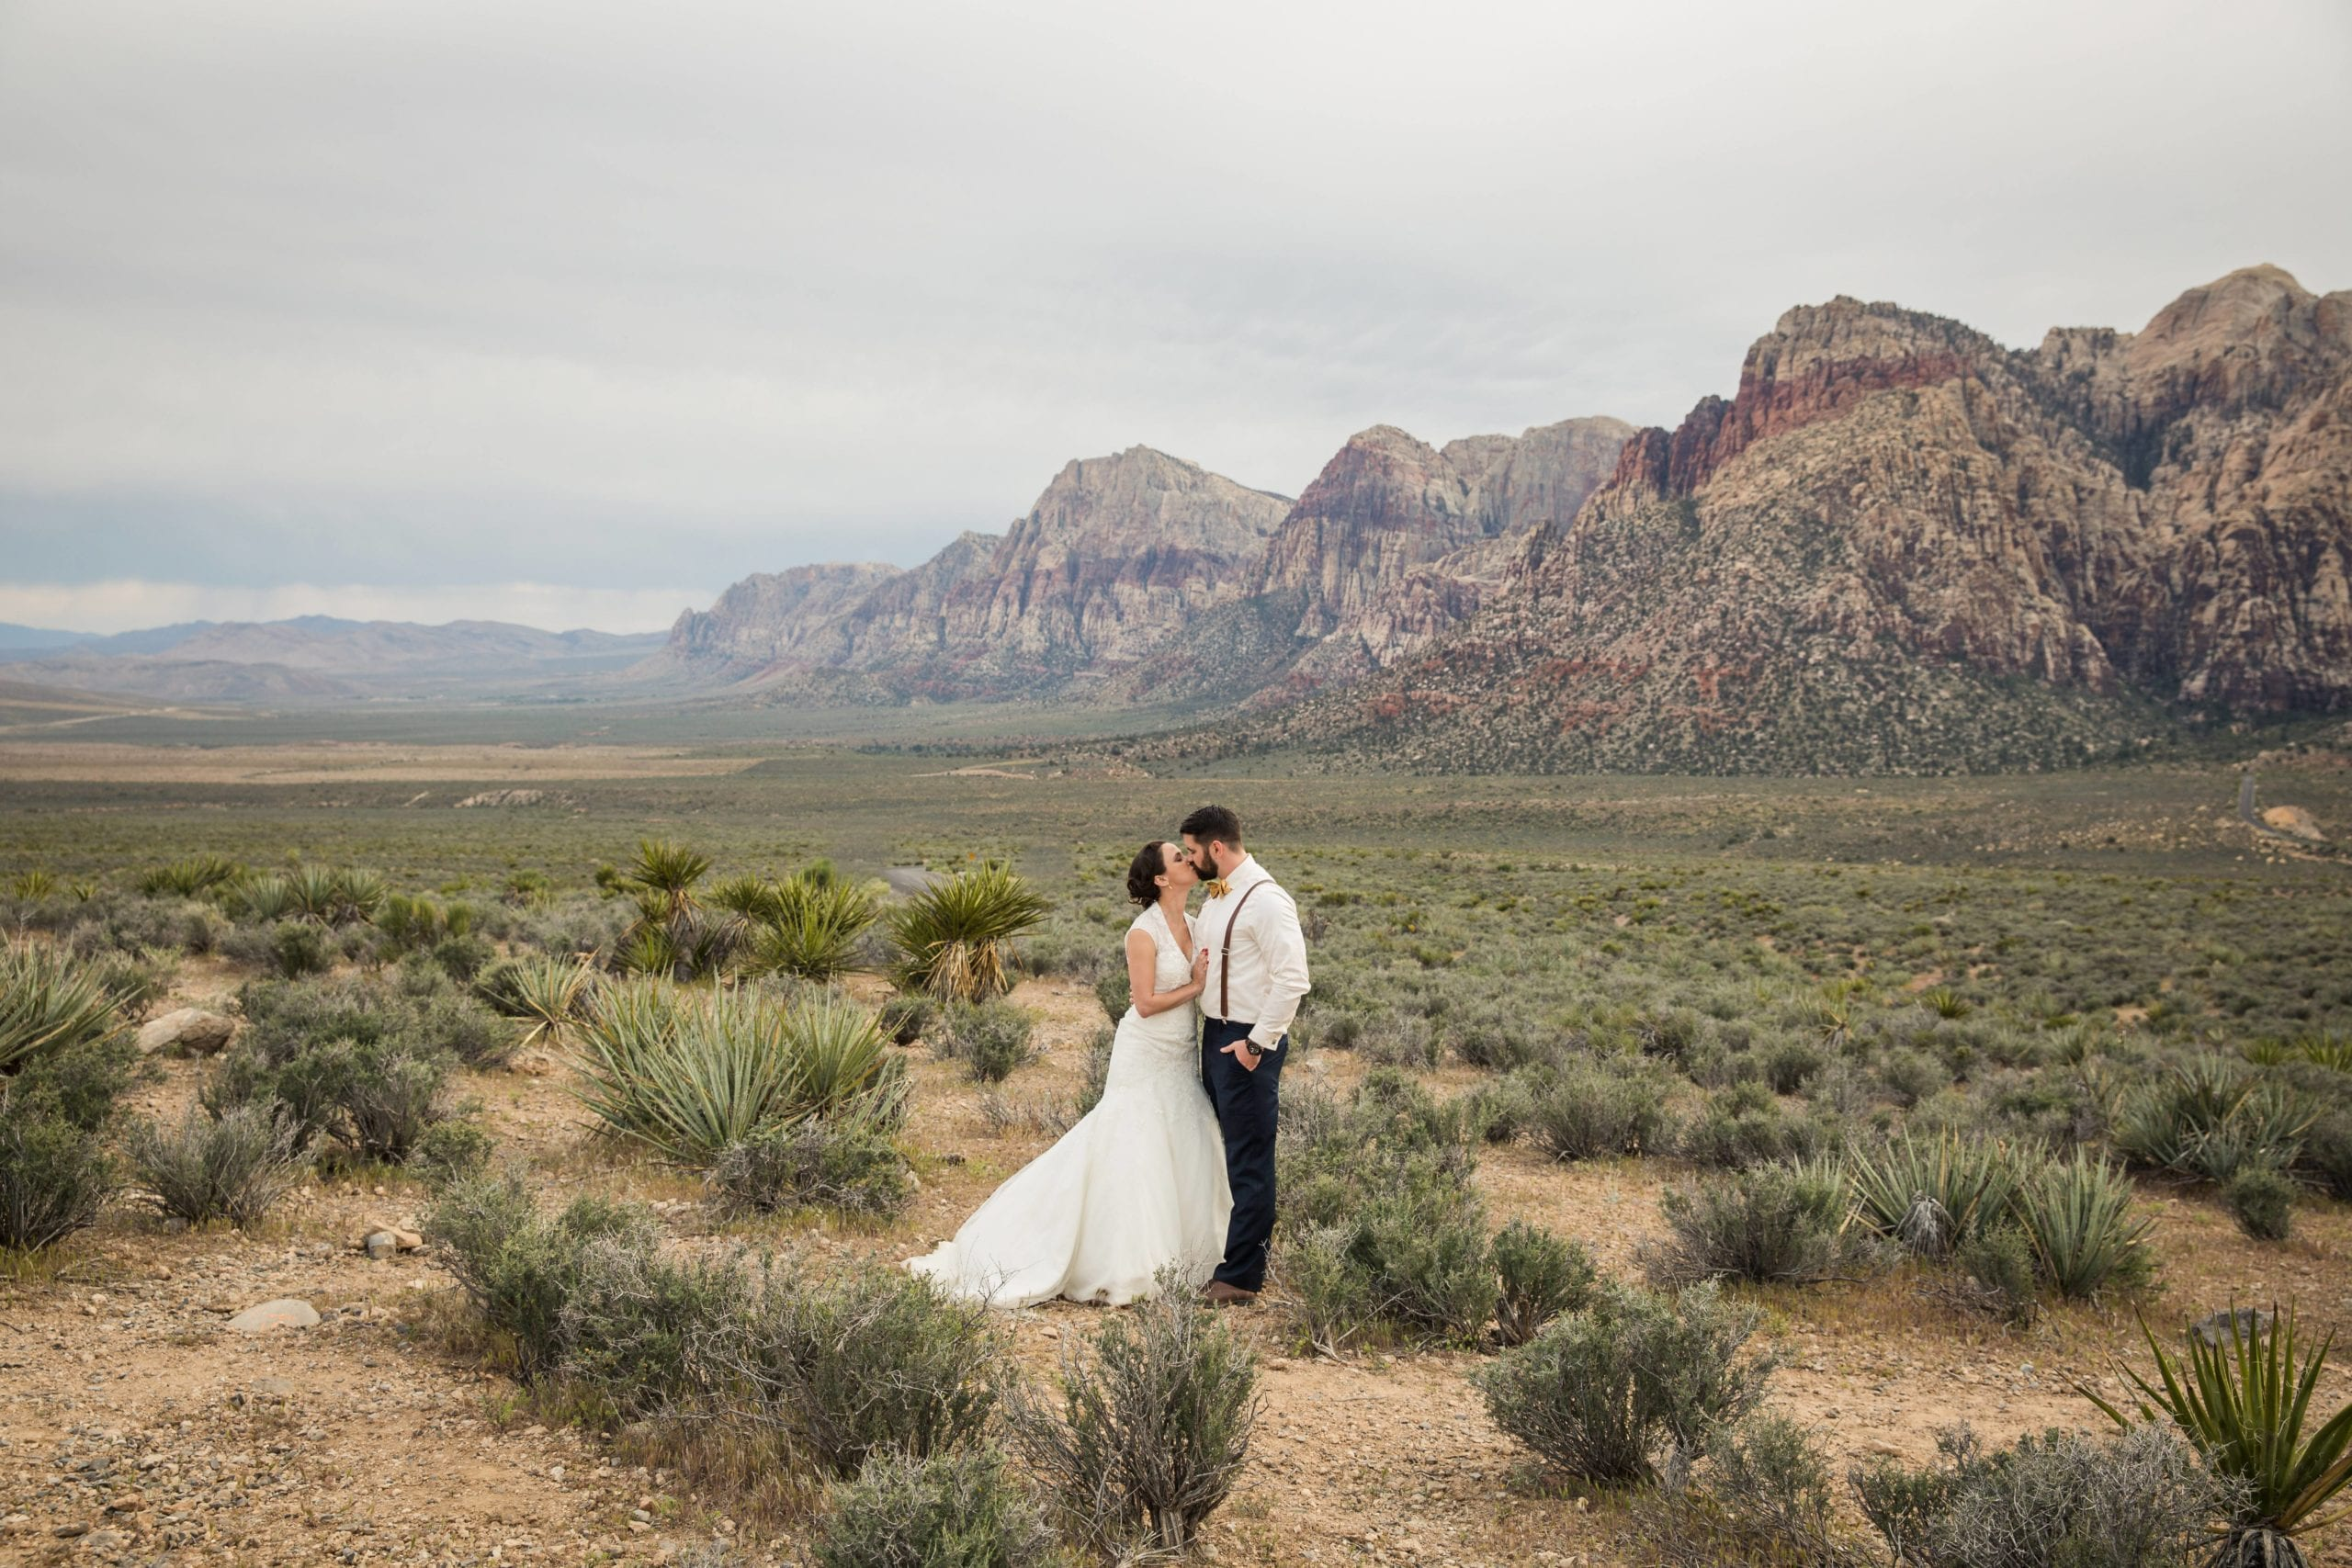 Top 5 Reasons to Have A Desert Wedding